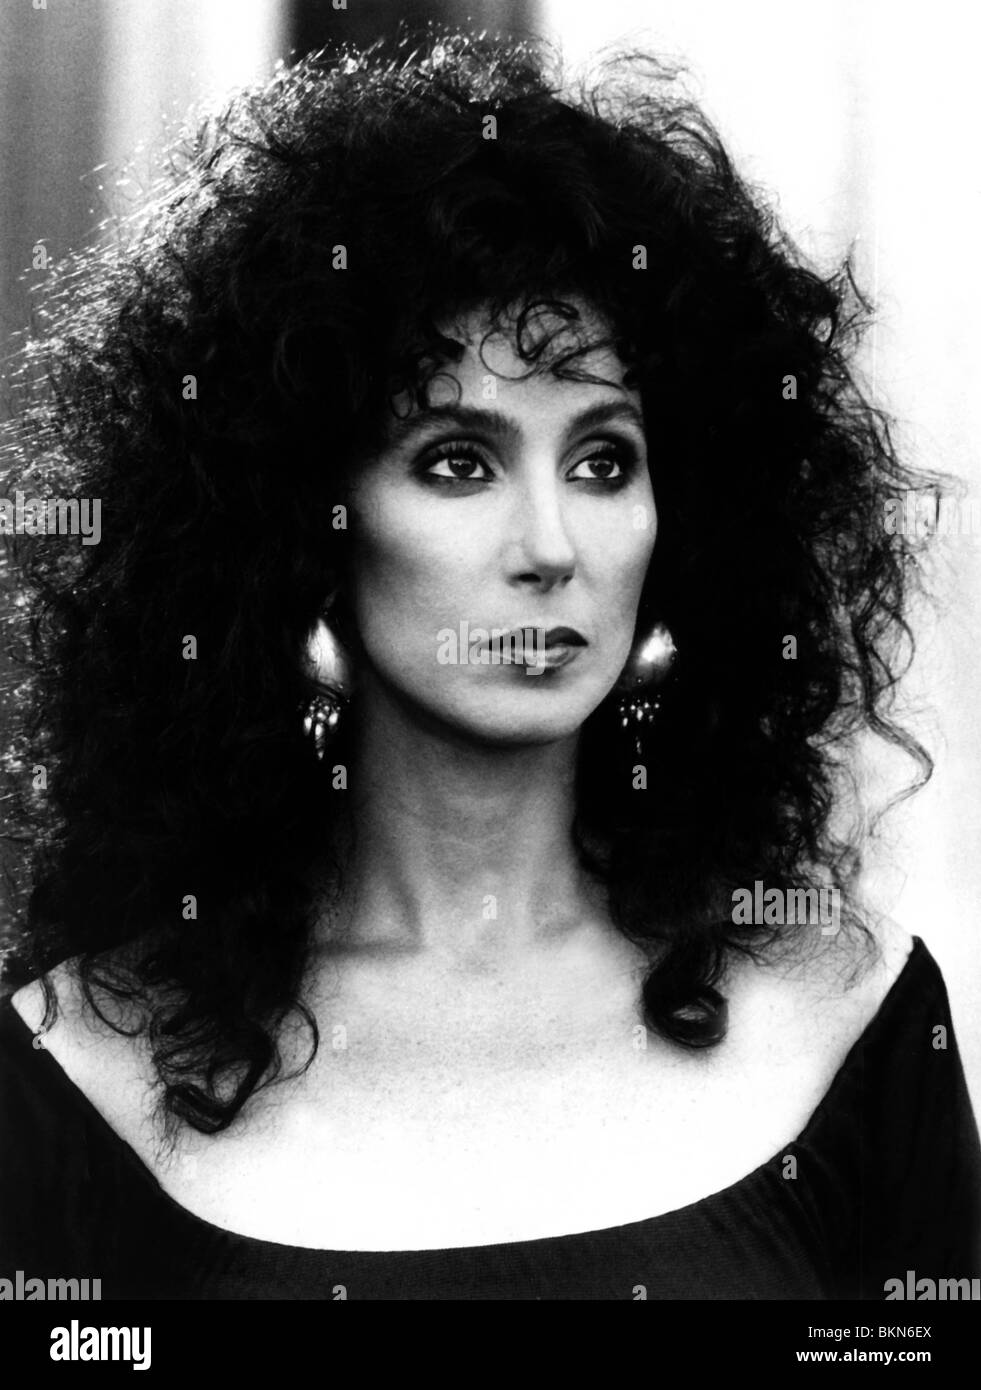 THE WITCHES OF EASTWICK (1987) CHER WOE 010P - Stock Image